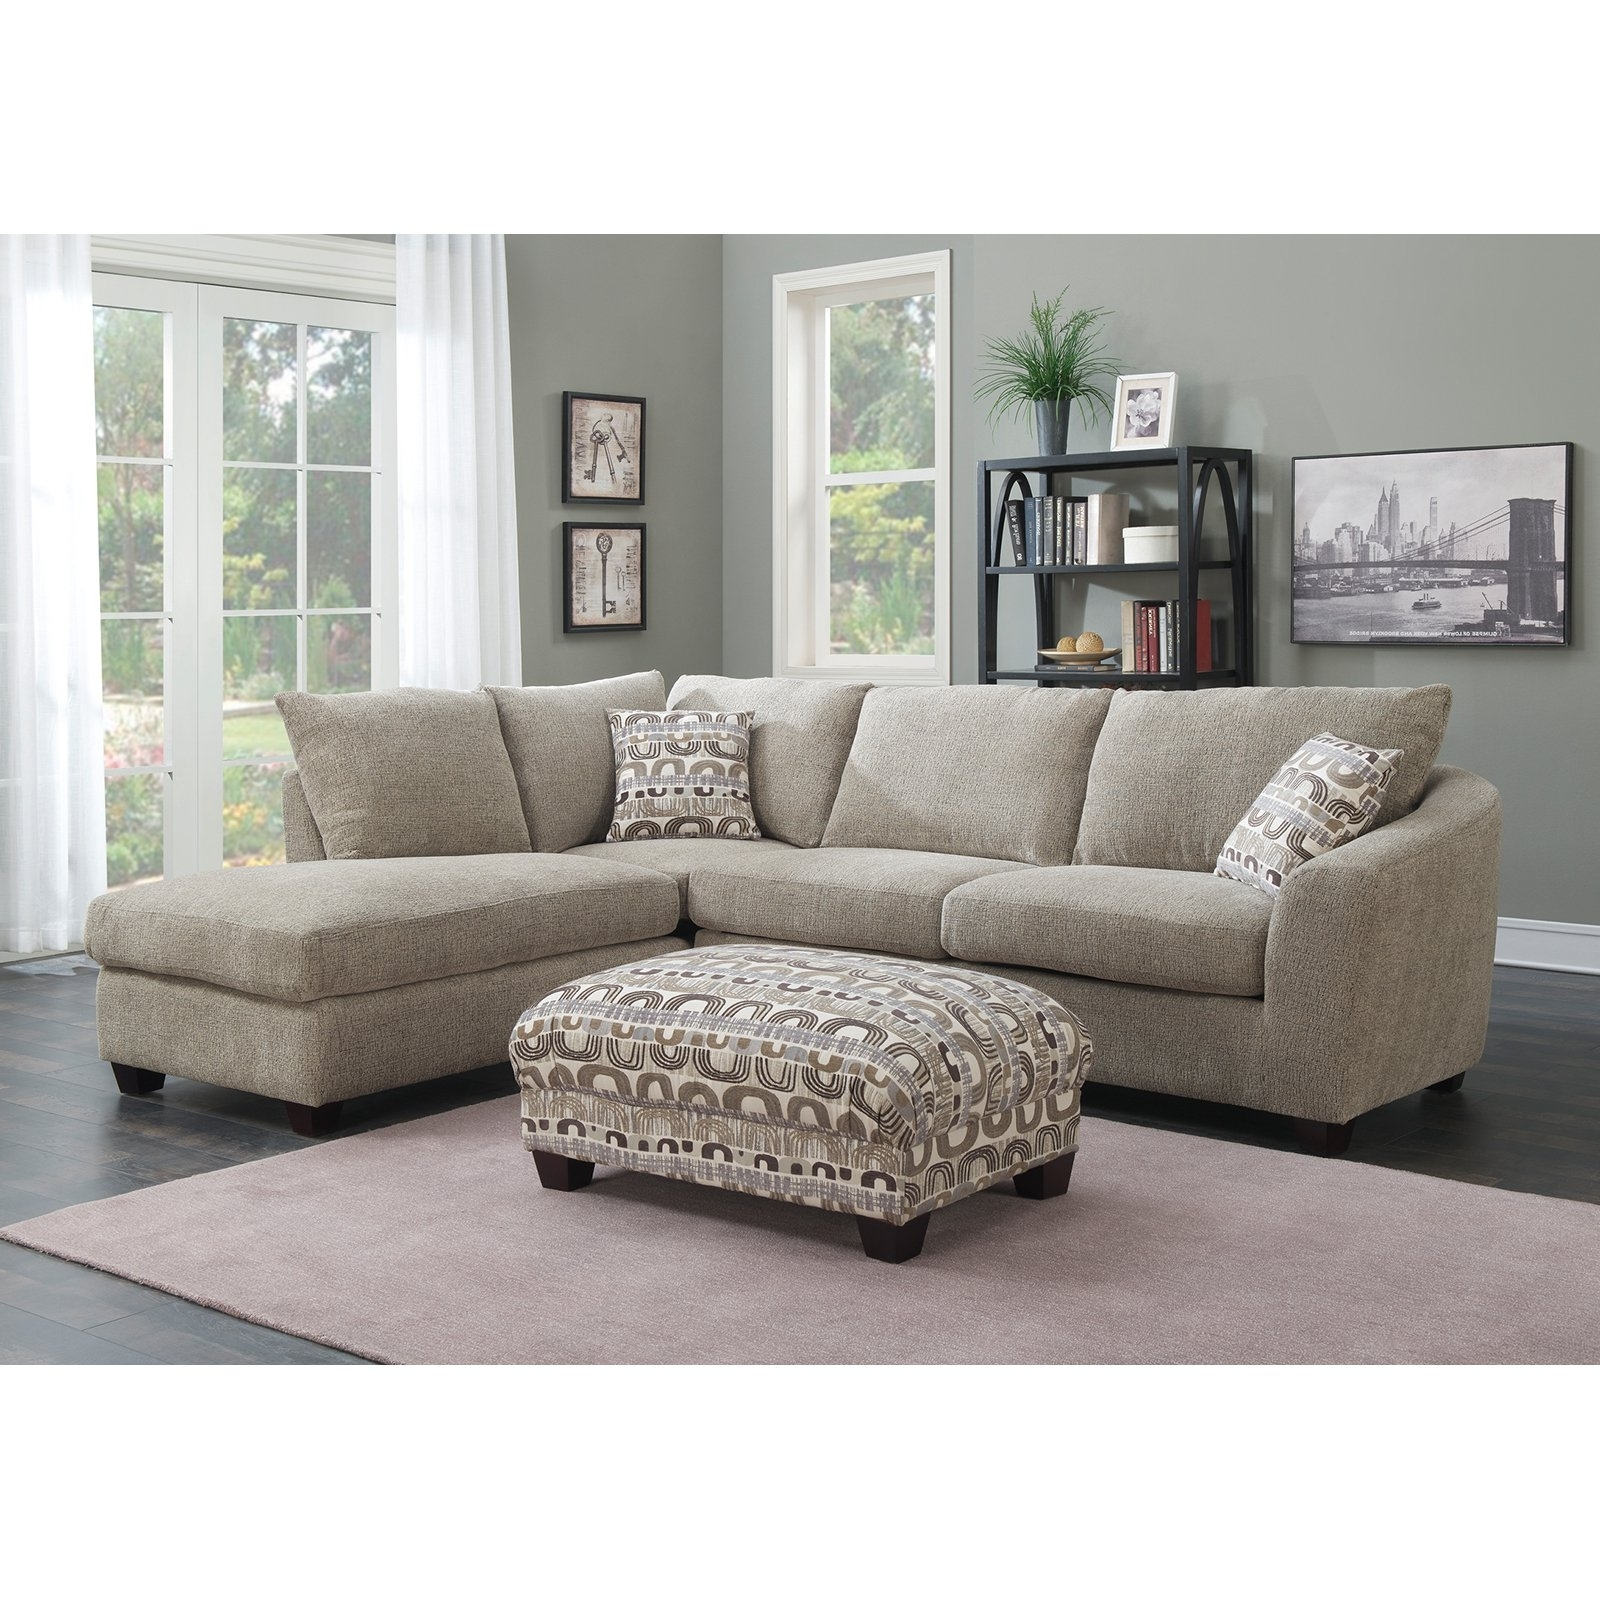 Most Recently Released Quebec Sectional Sofas With Regard To Off Agata Light Grey Sectional Sofas Gray Sofa Modern Fabric (View 12 of 20)